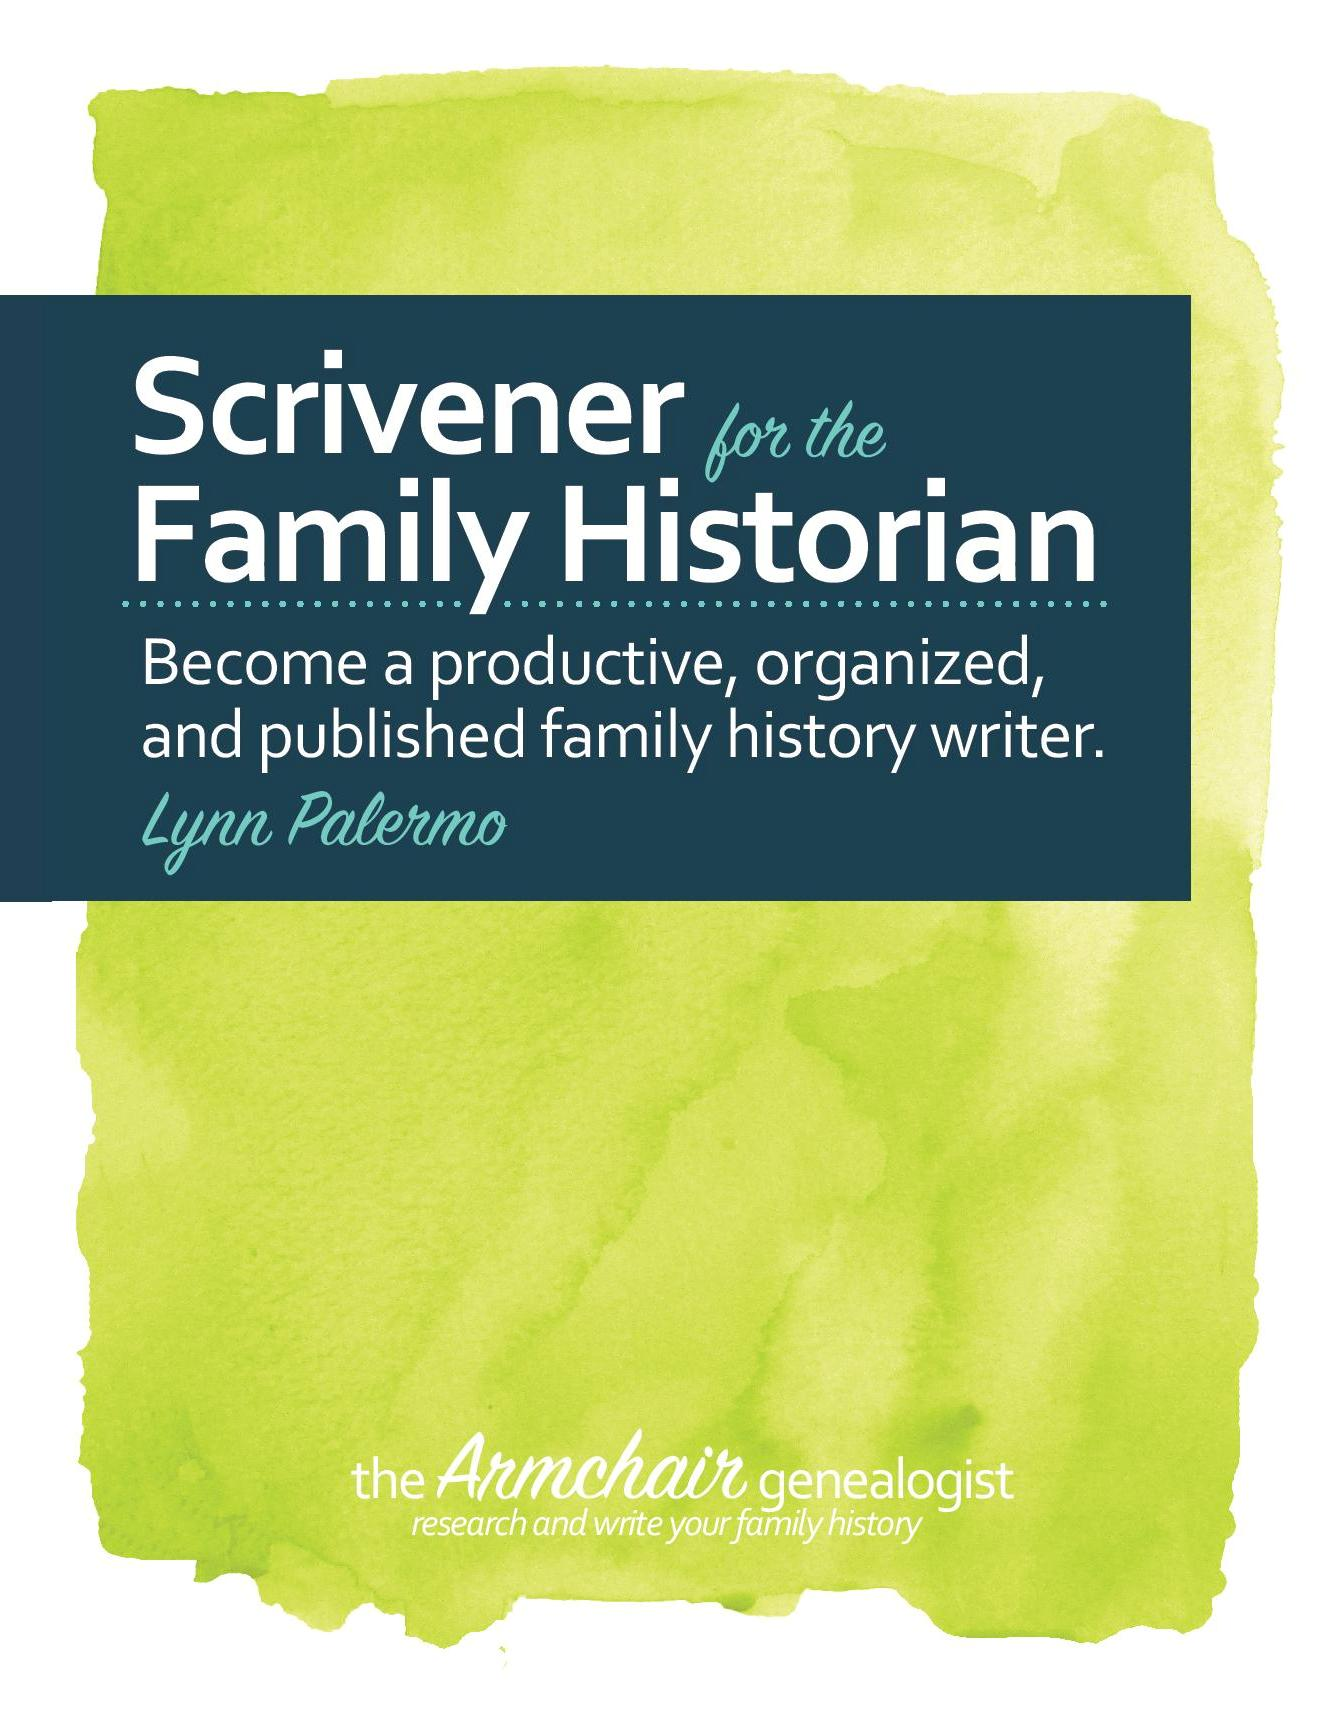 compiling a family history book